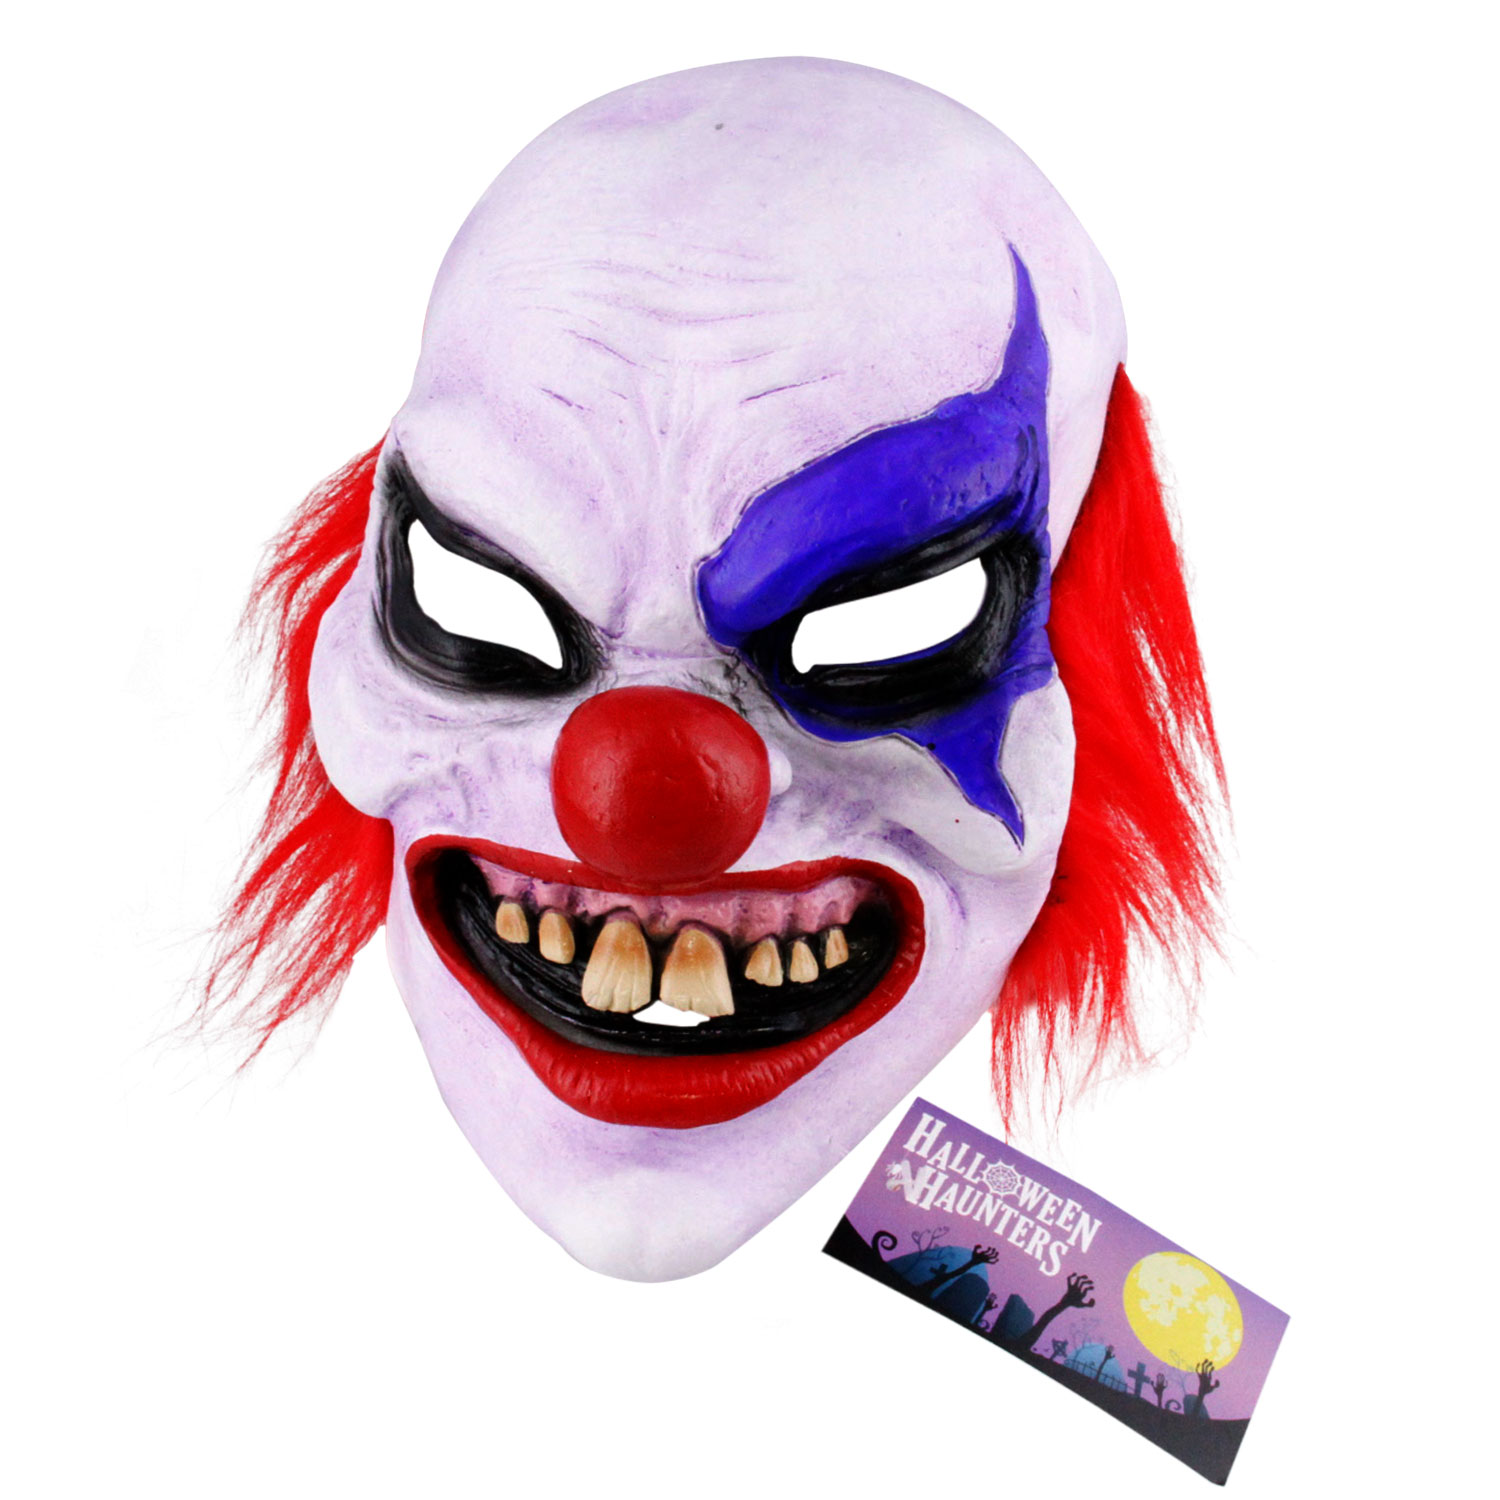 Halloween Haunters Scary Evil Latex Clown Mask - Creepy Face & Grin, Costume Party Prop